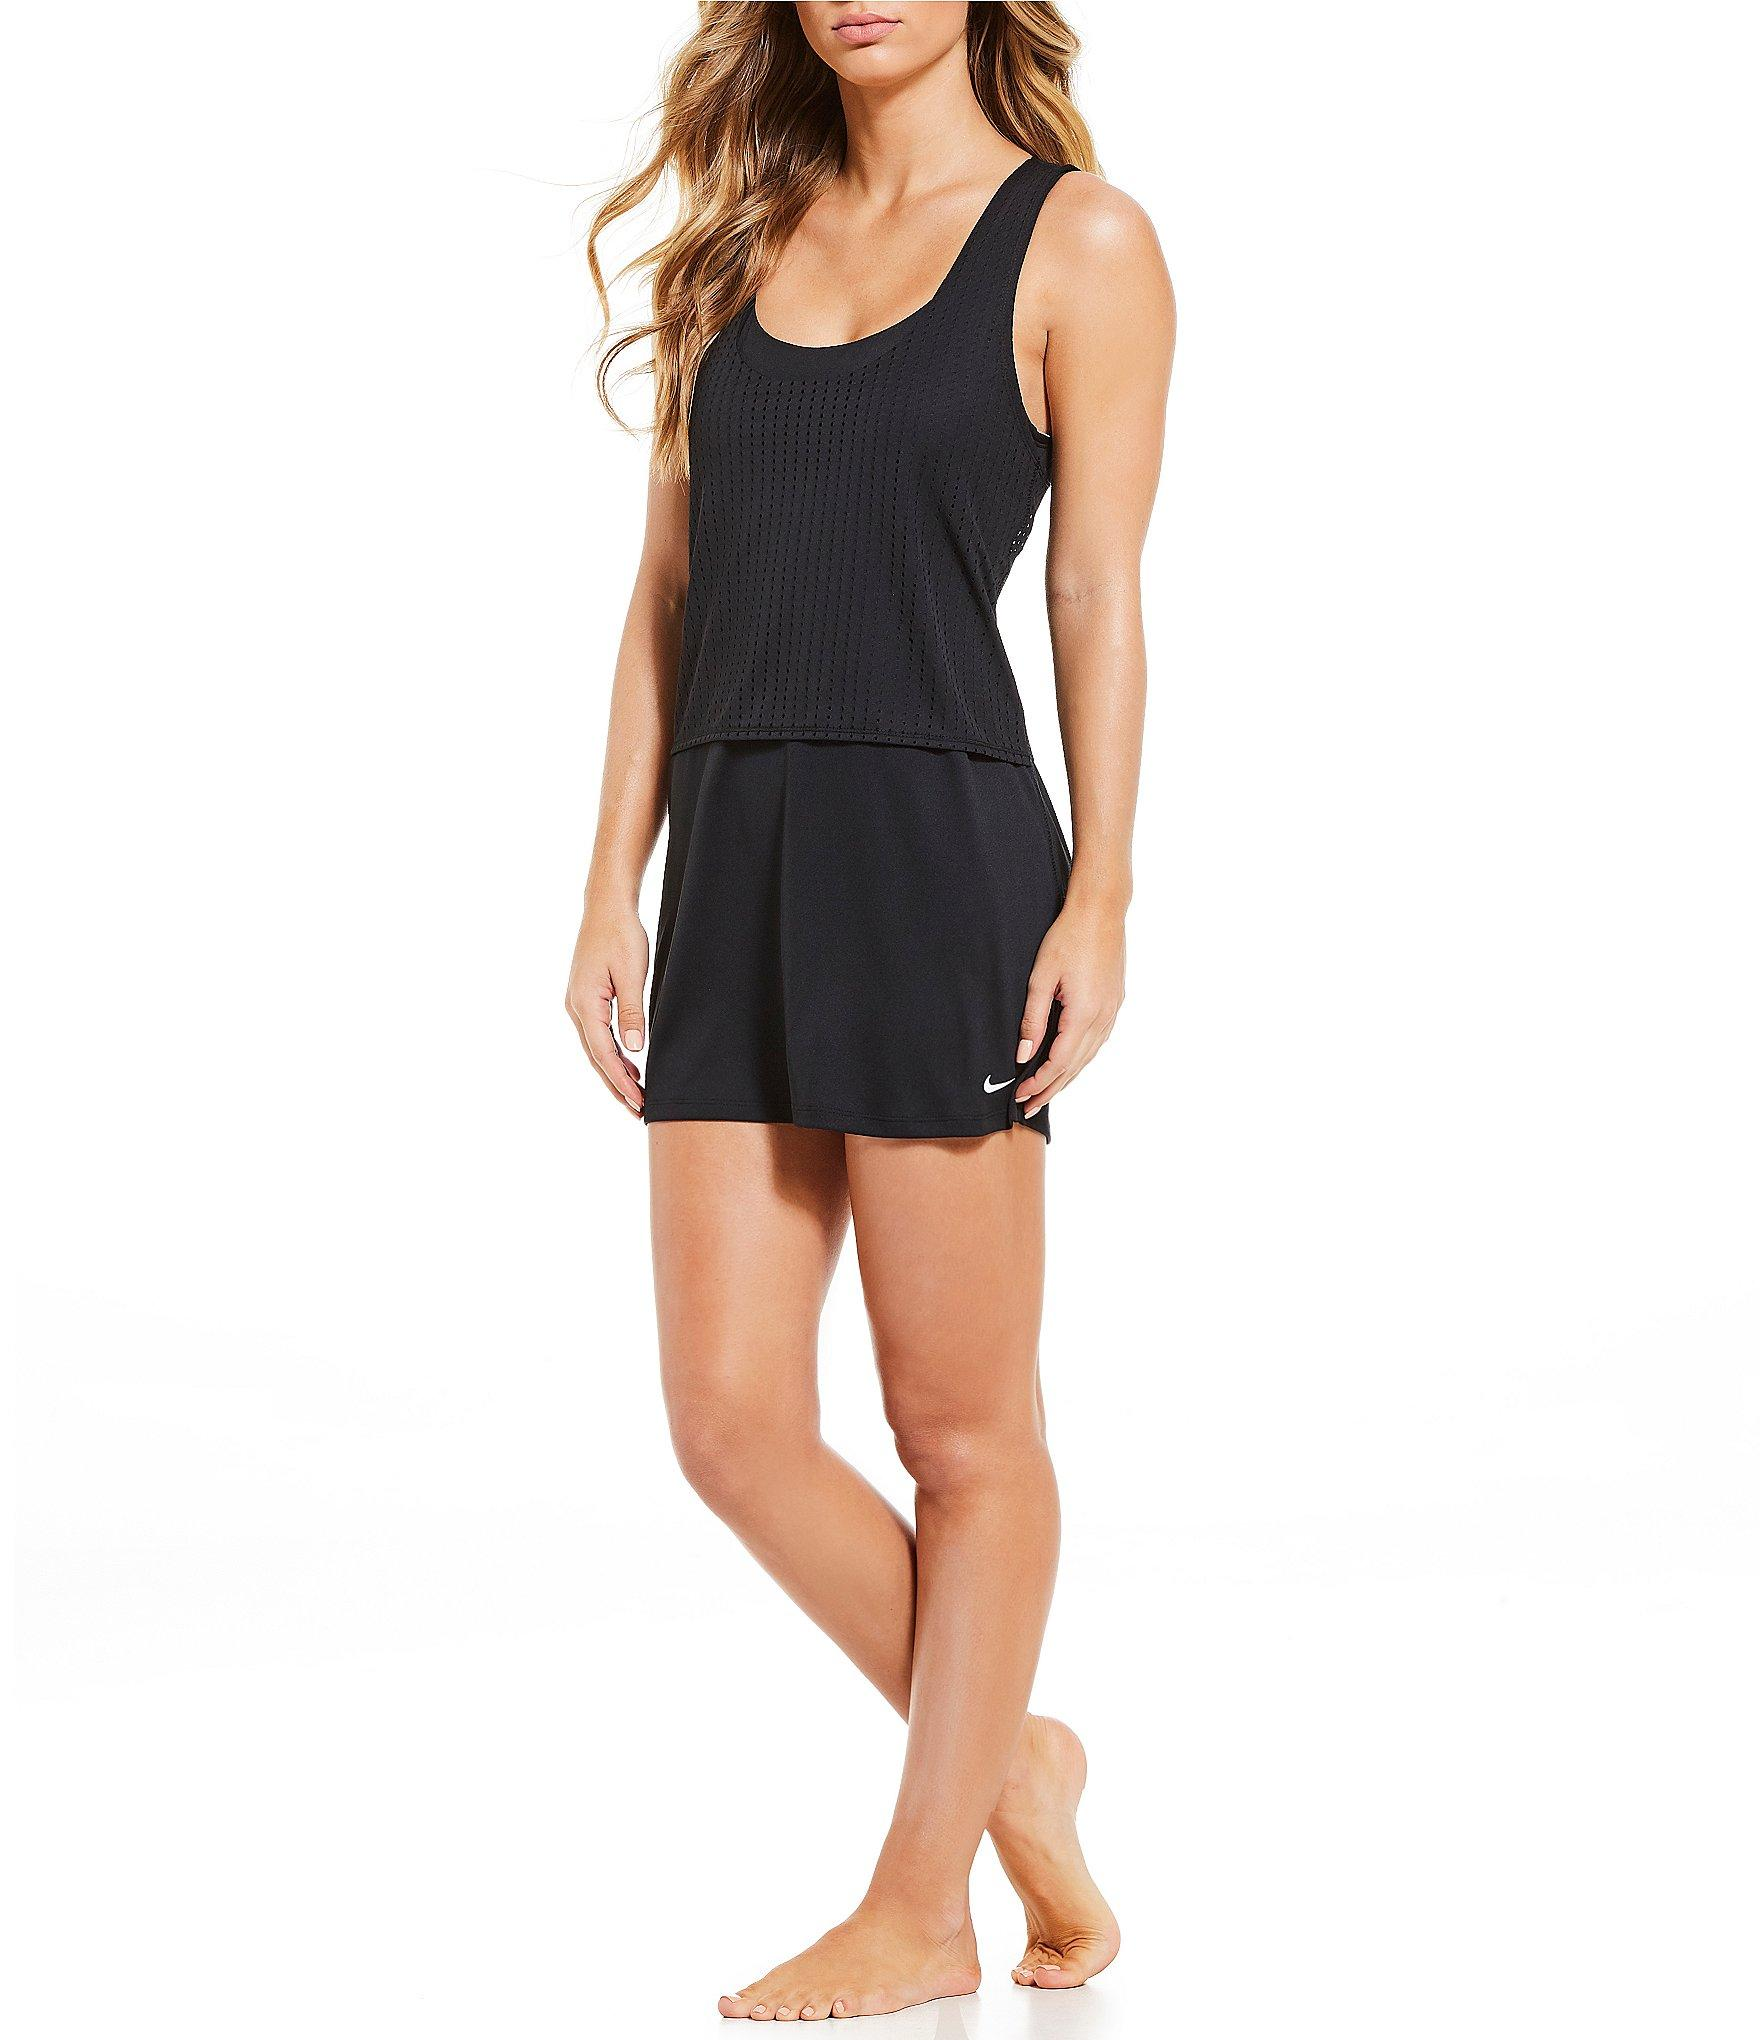 533bb03b63 Lyst - Nike Sport Mesh Reversible Layered Cover Up Dress in Black